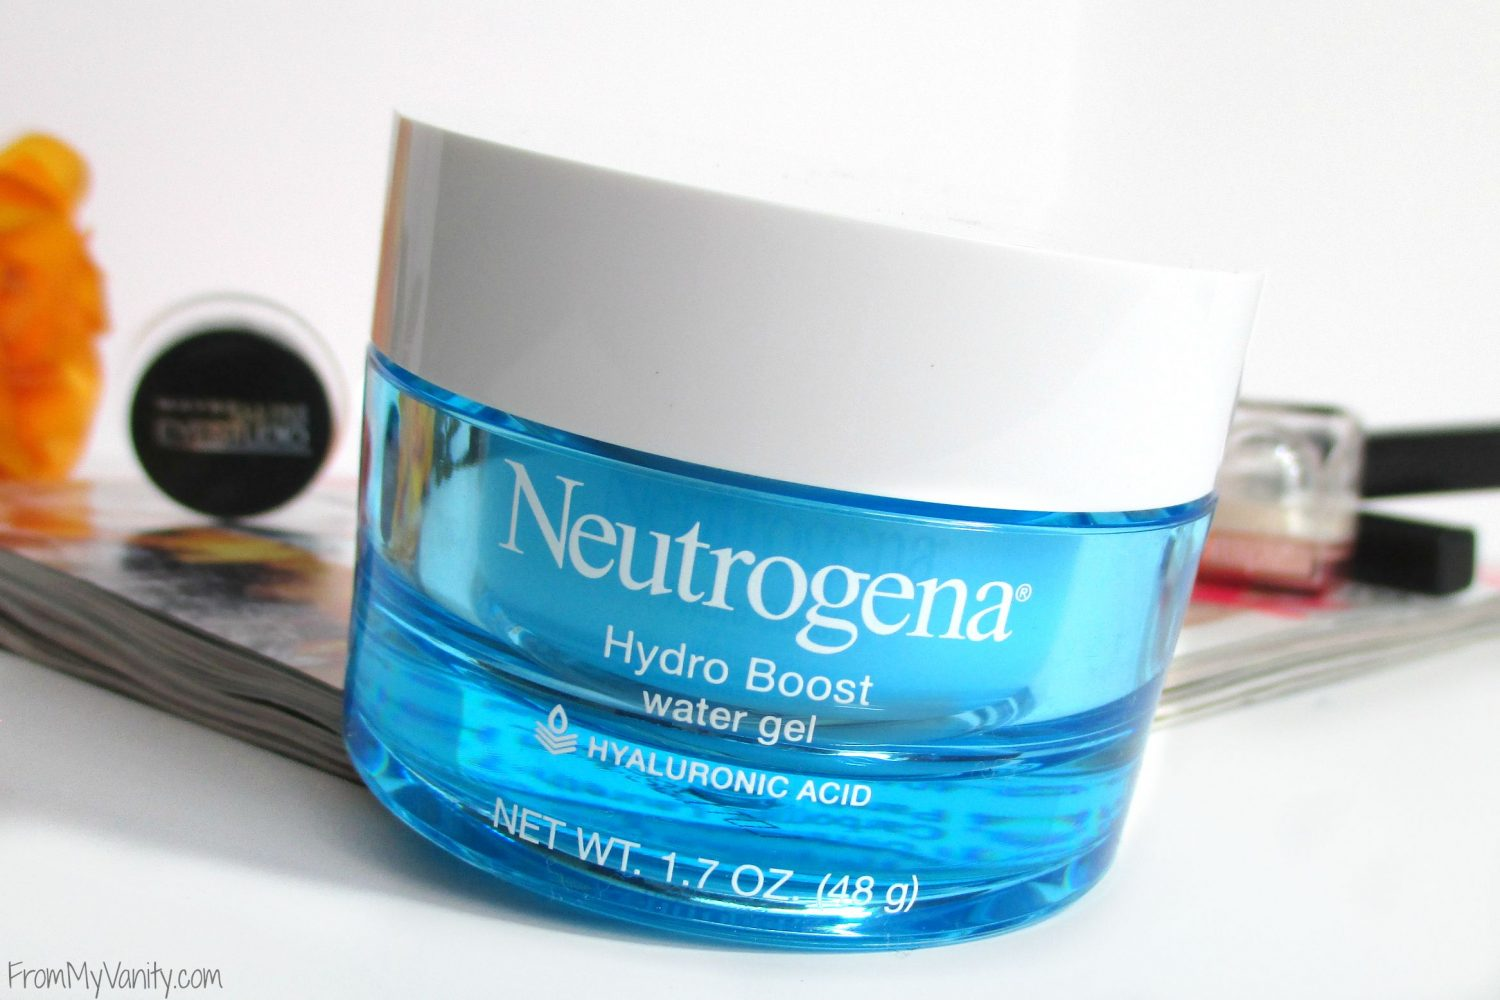 Favorite Drugstore Beauty Buys // Neutrogena Hydro Boost // Elle Sees & From My Vanity